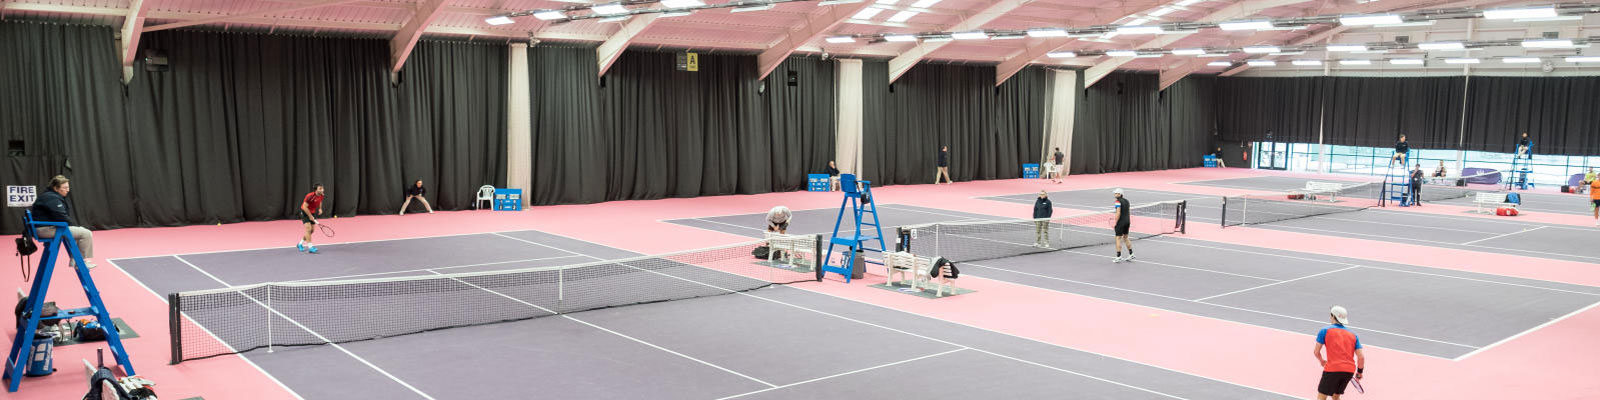 the Tennis Centre at Loughborough University